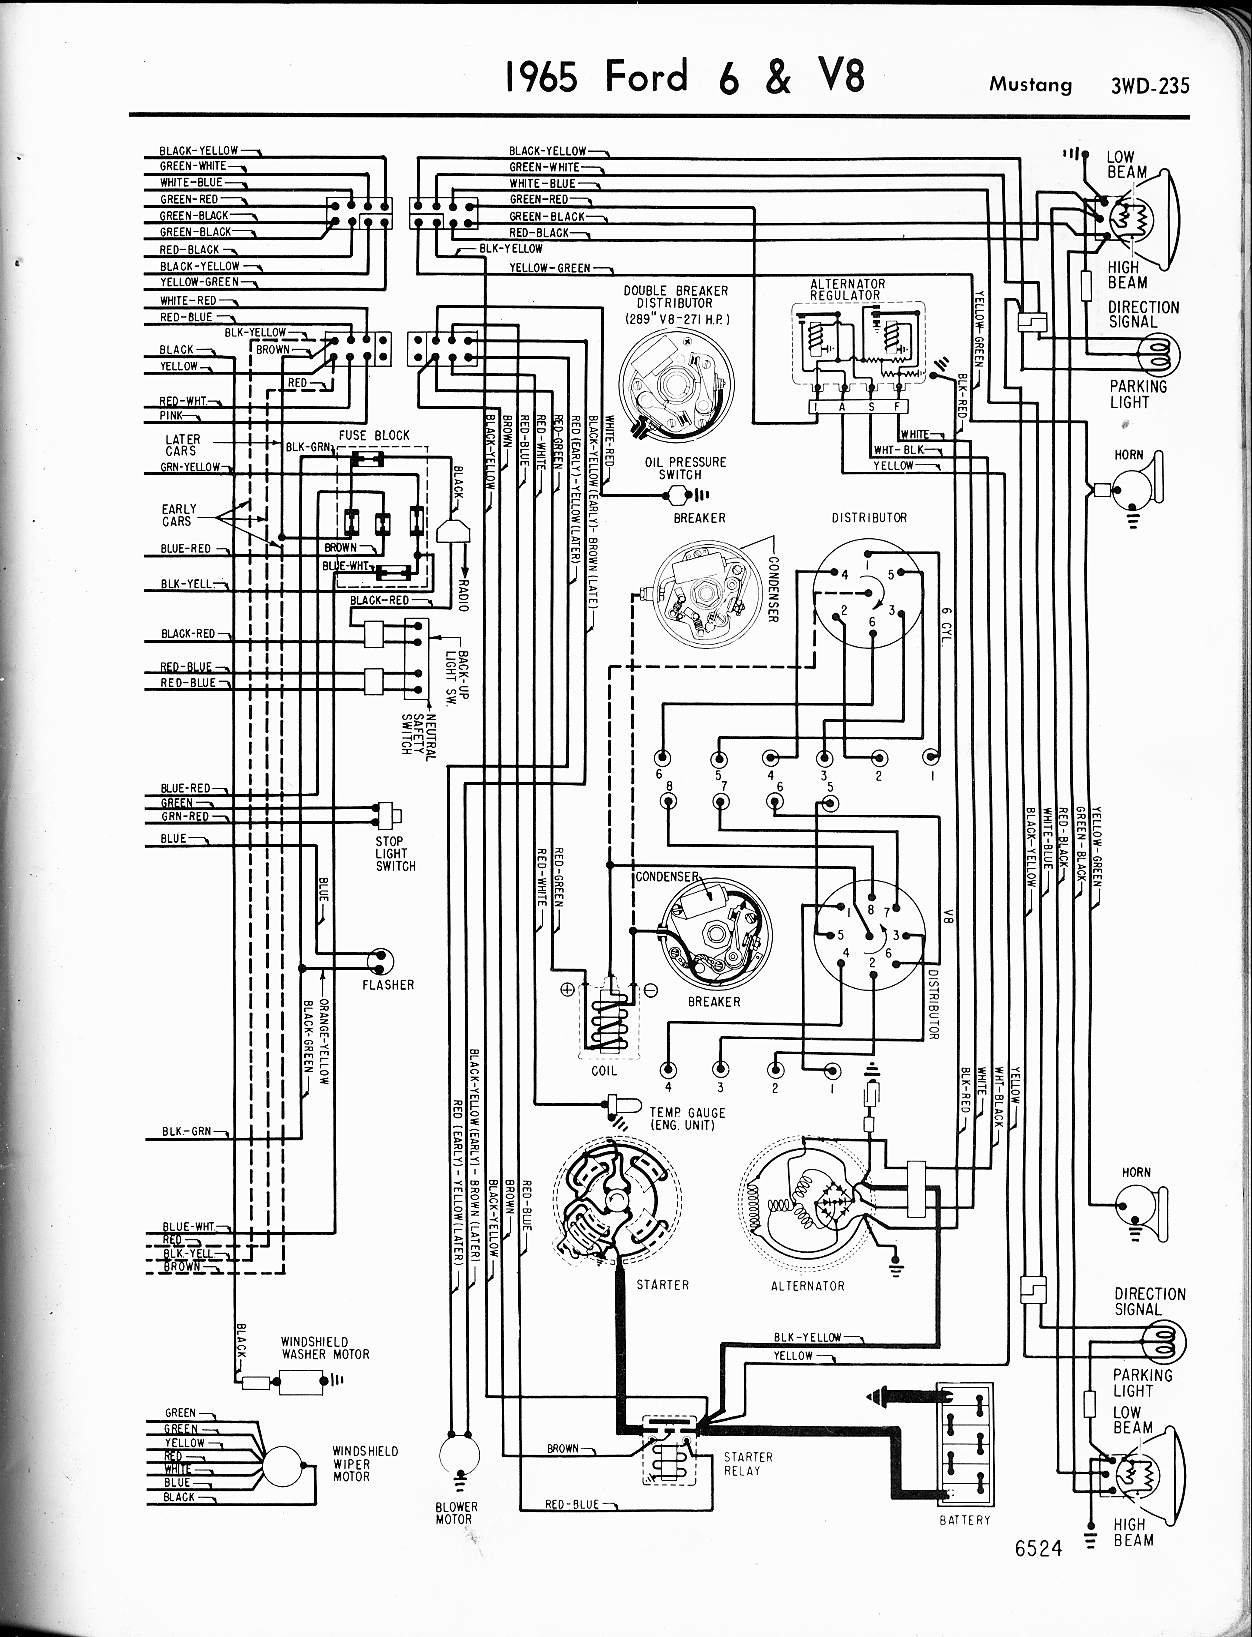 1965 ford wiring diagram manual form 7795p 65